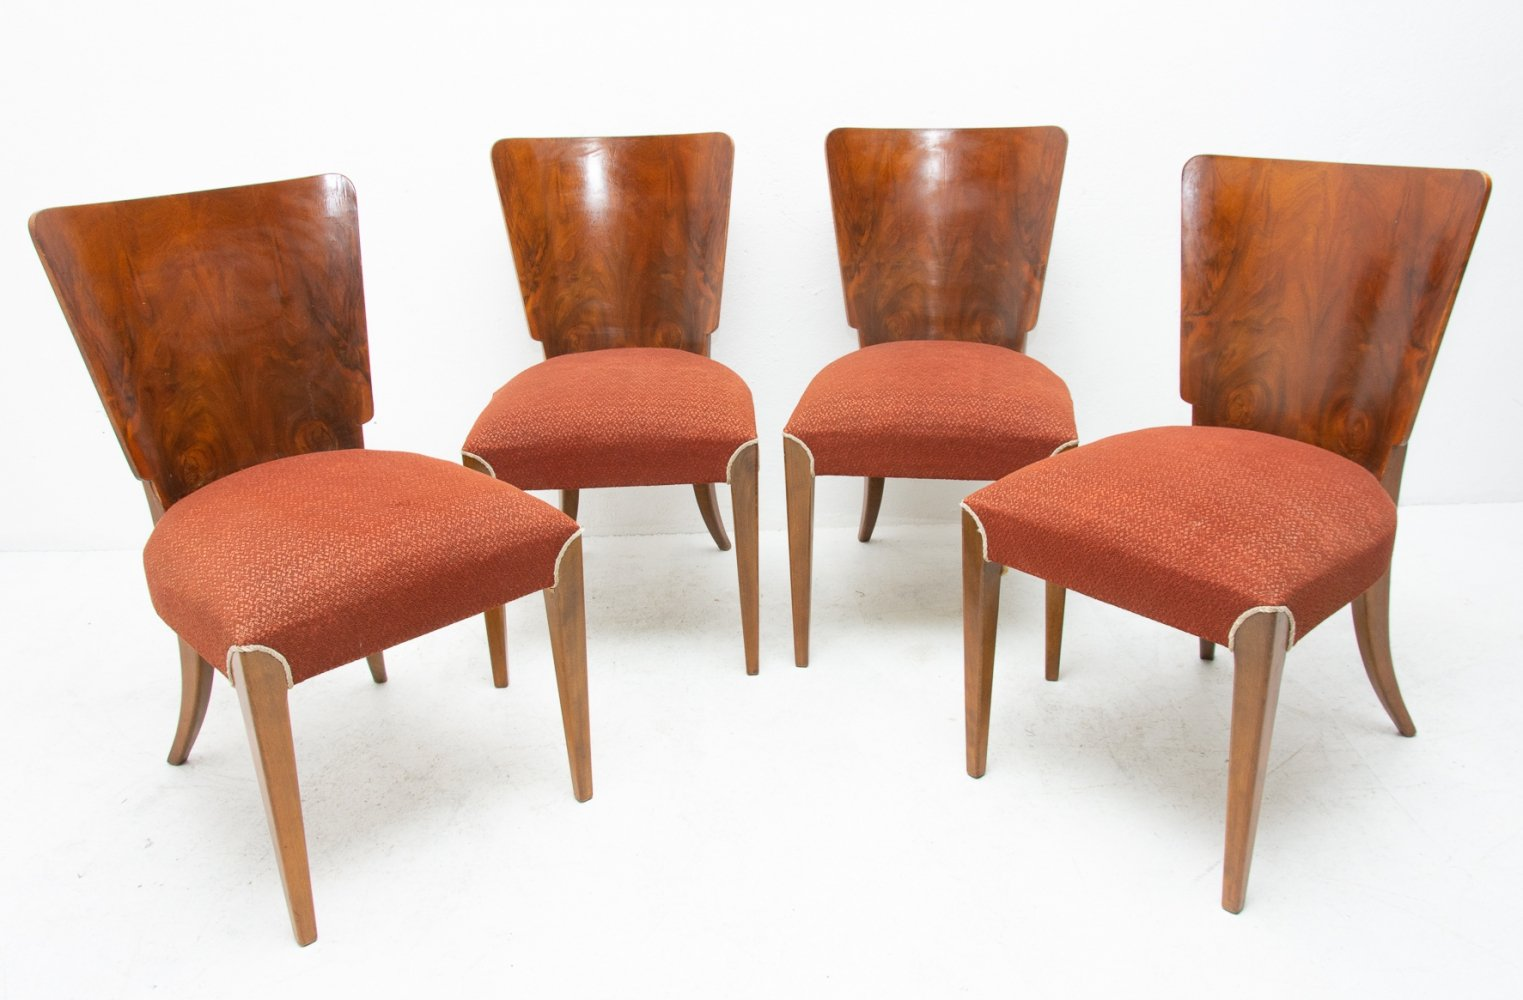 Set of 4 H-214 dining chairs by Jindřich Halabala for UP Závody, 1950s